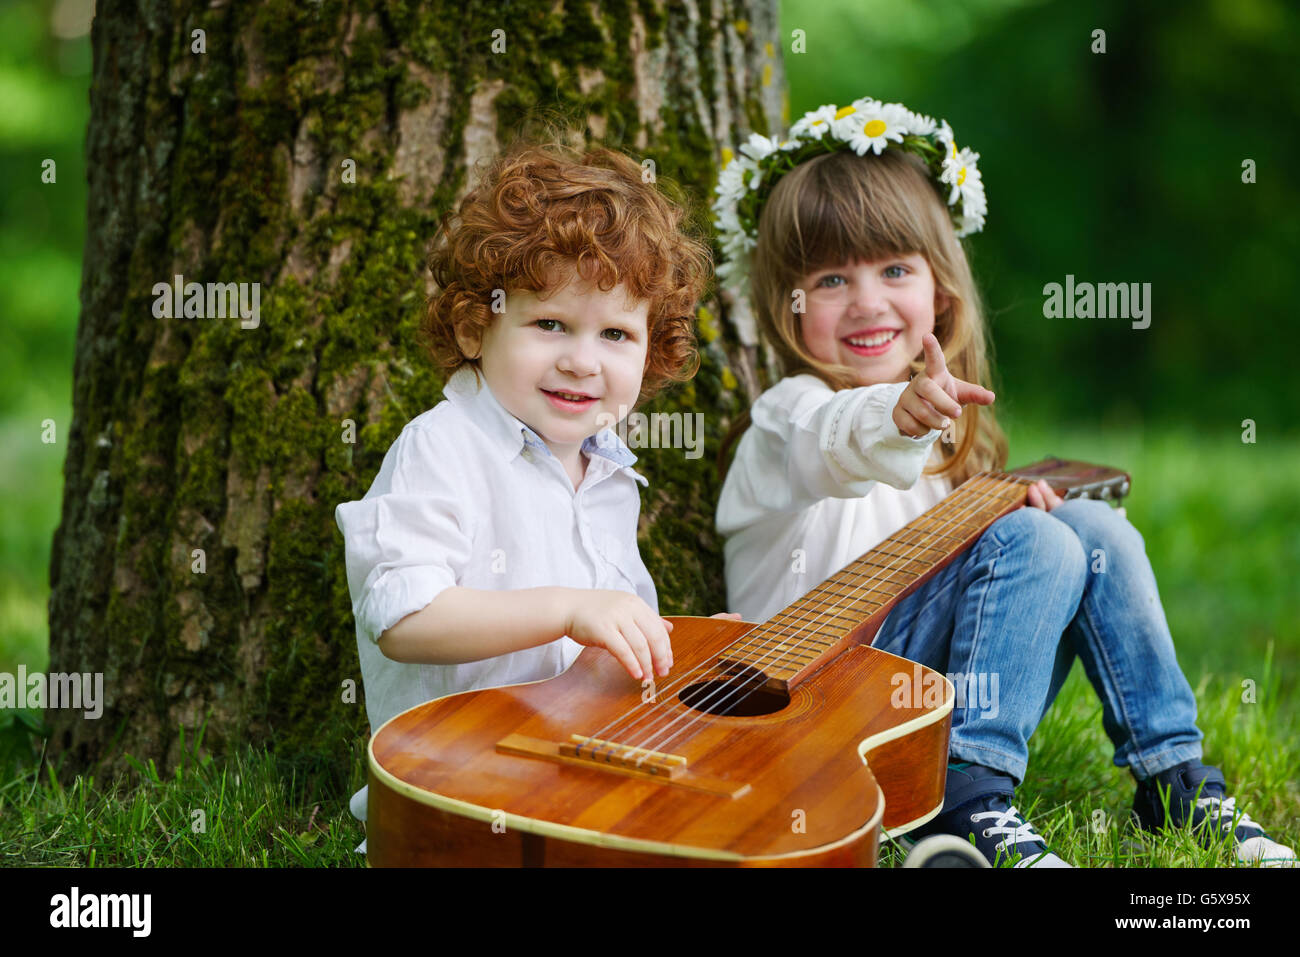 cute children playing guitar stock photo: 106913462 - alamy